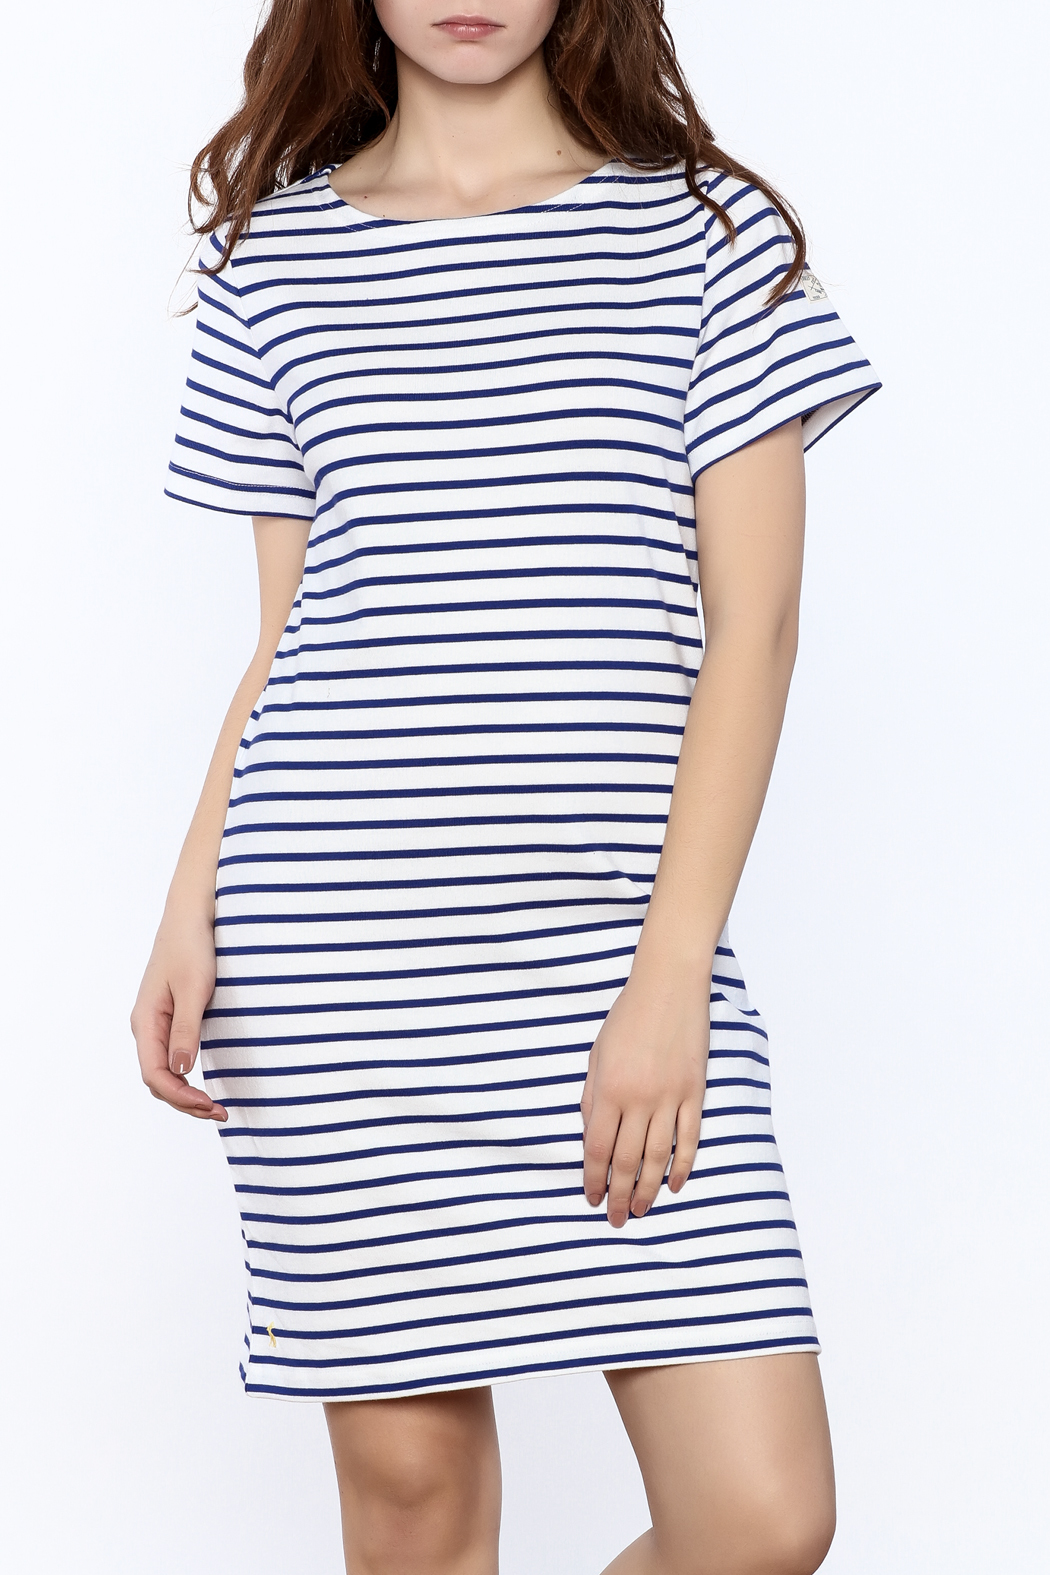 Joules Riviera Striped Dress - Main Image